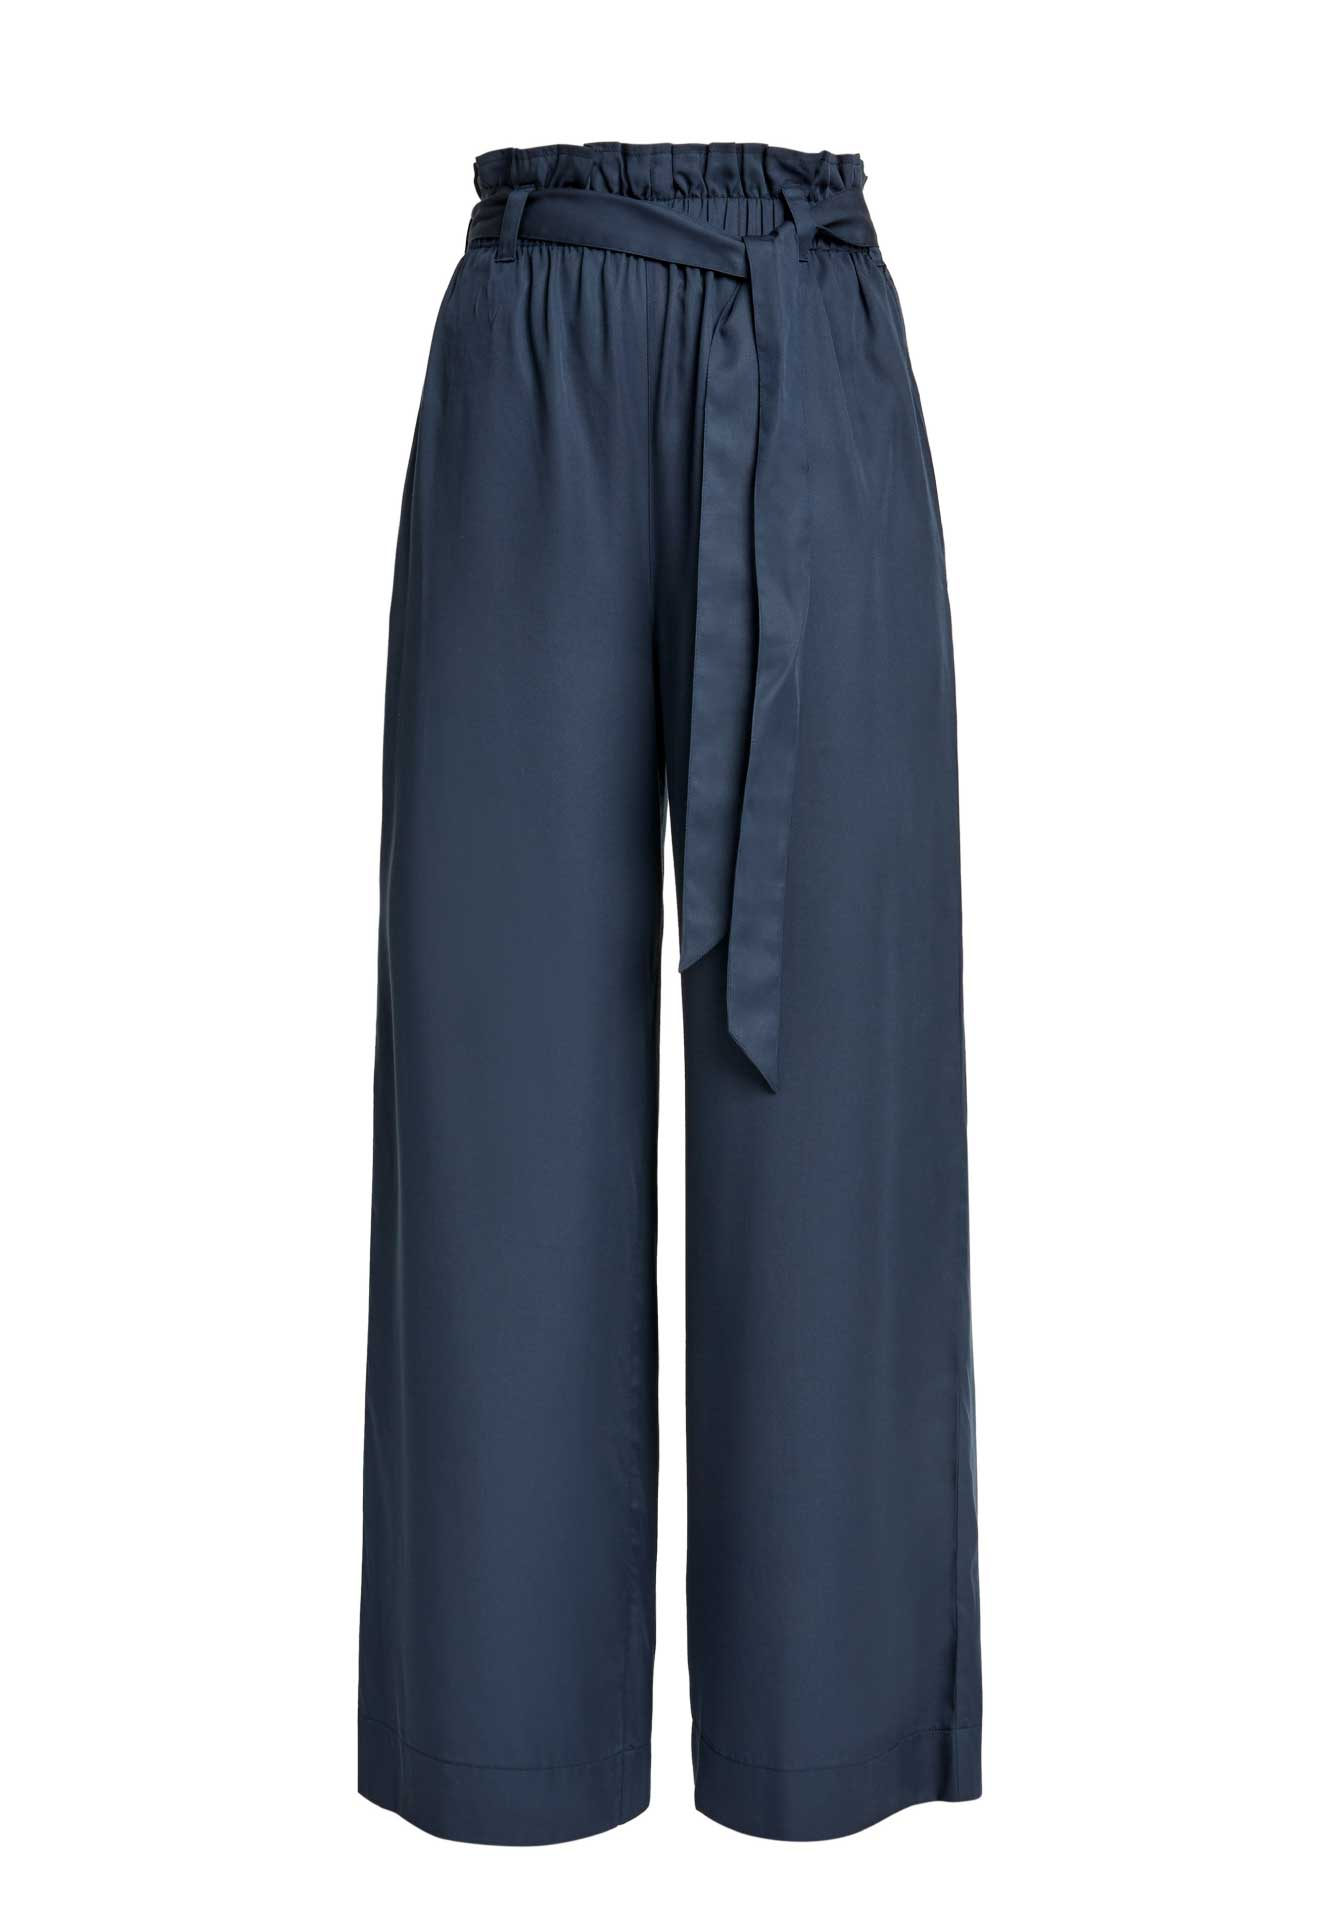 Susie trousers navy from The Blind Spot